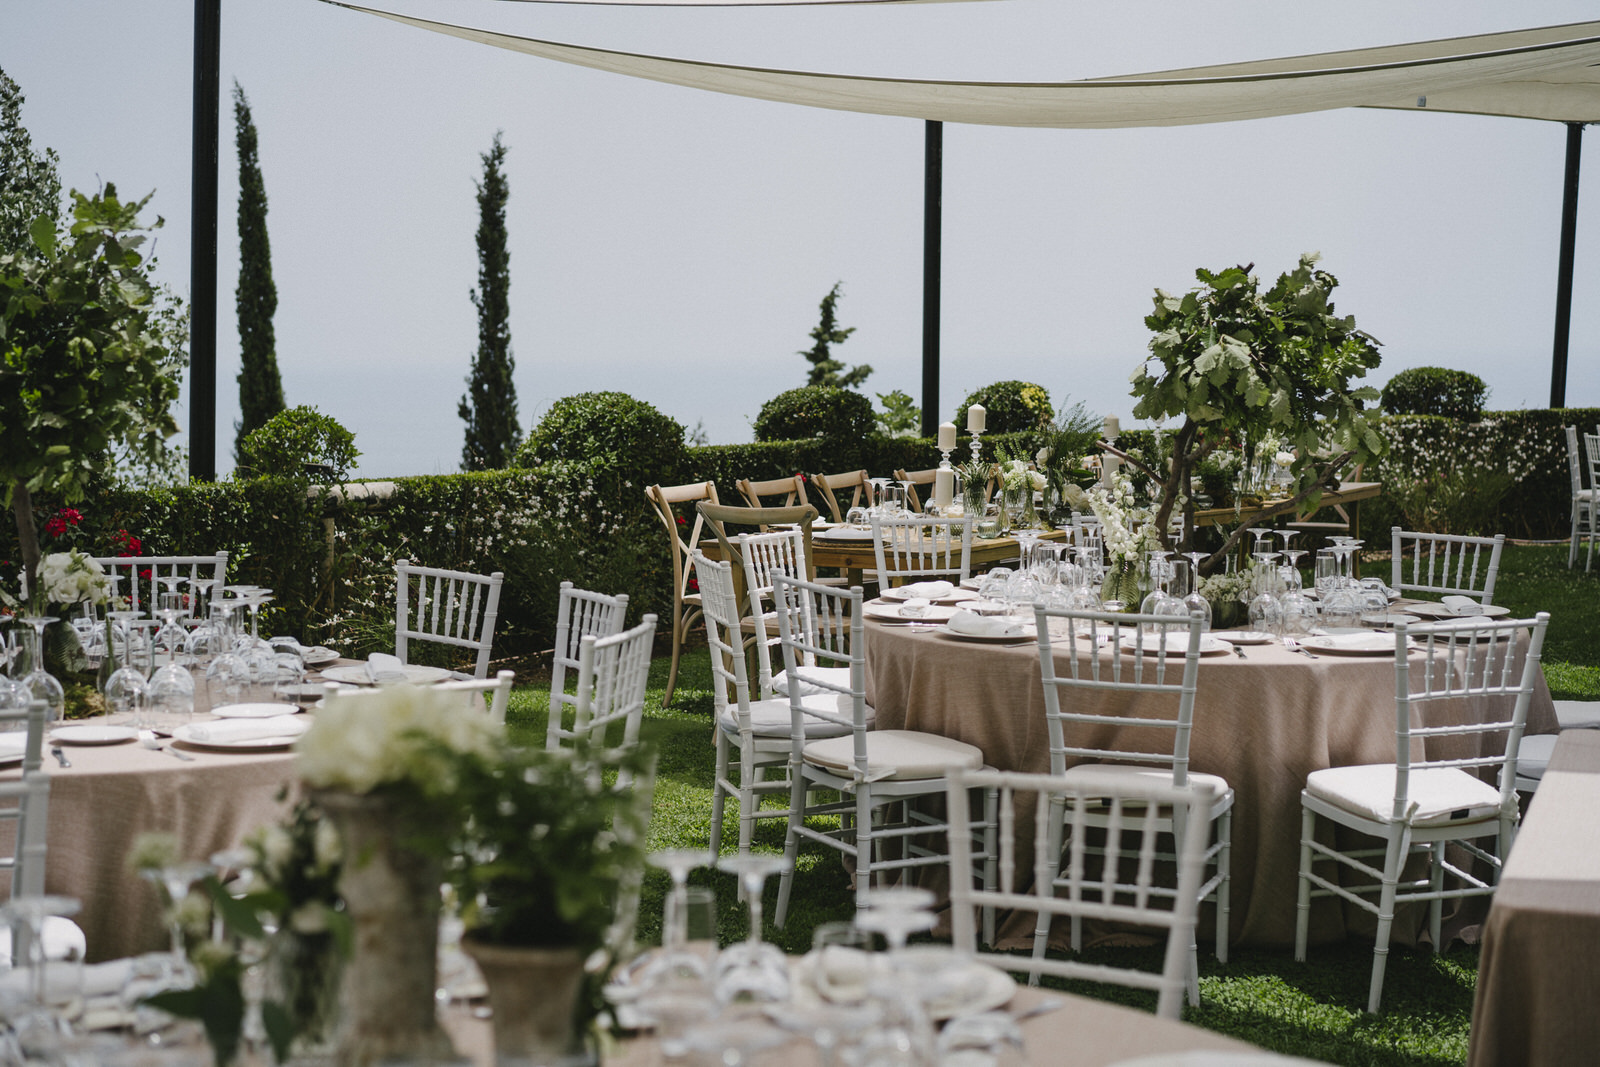 wedding-venues-view-pilarmartinezeventos